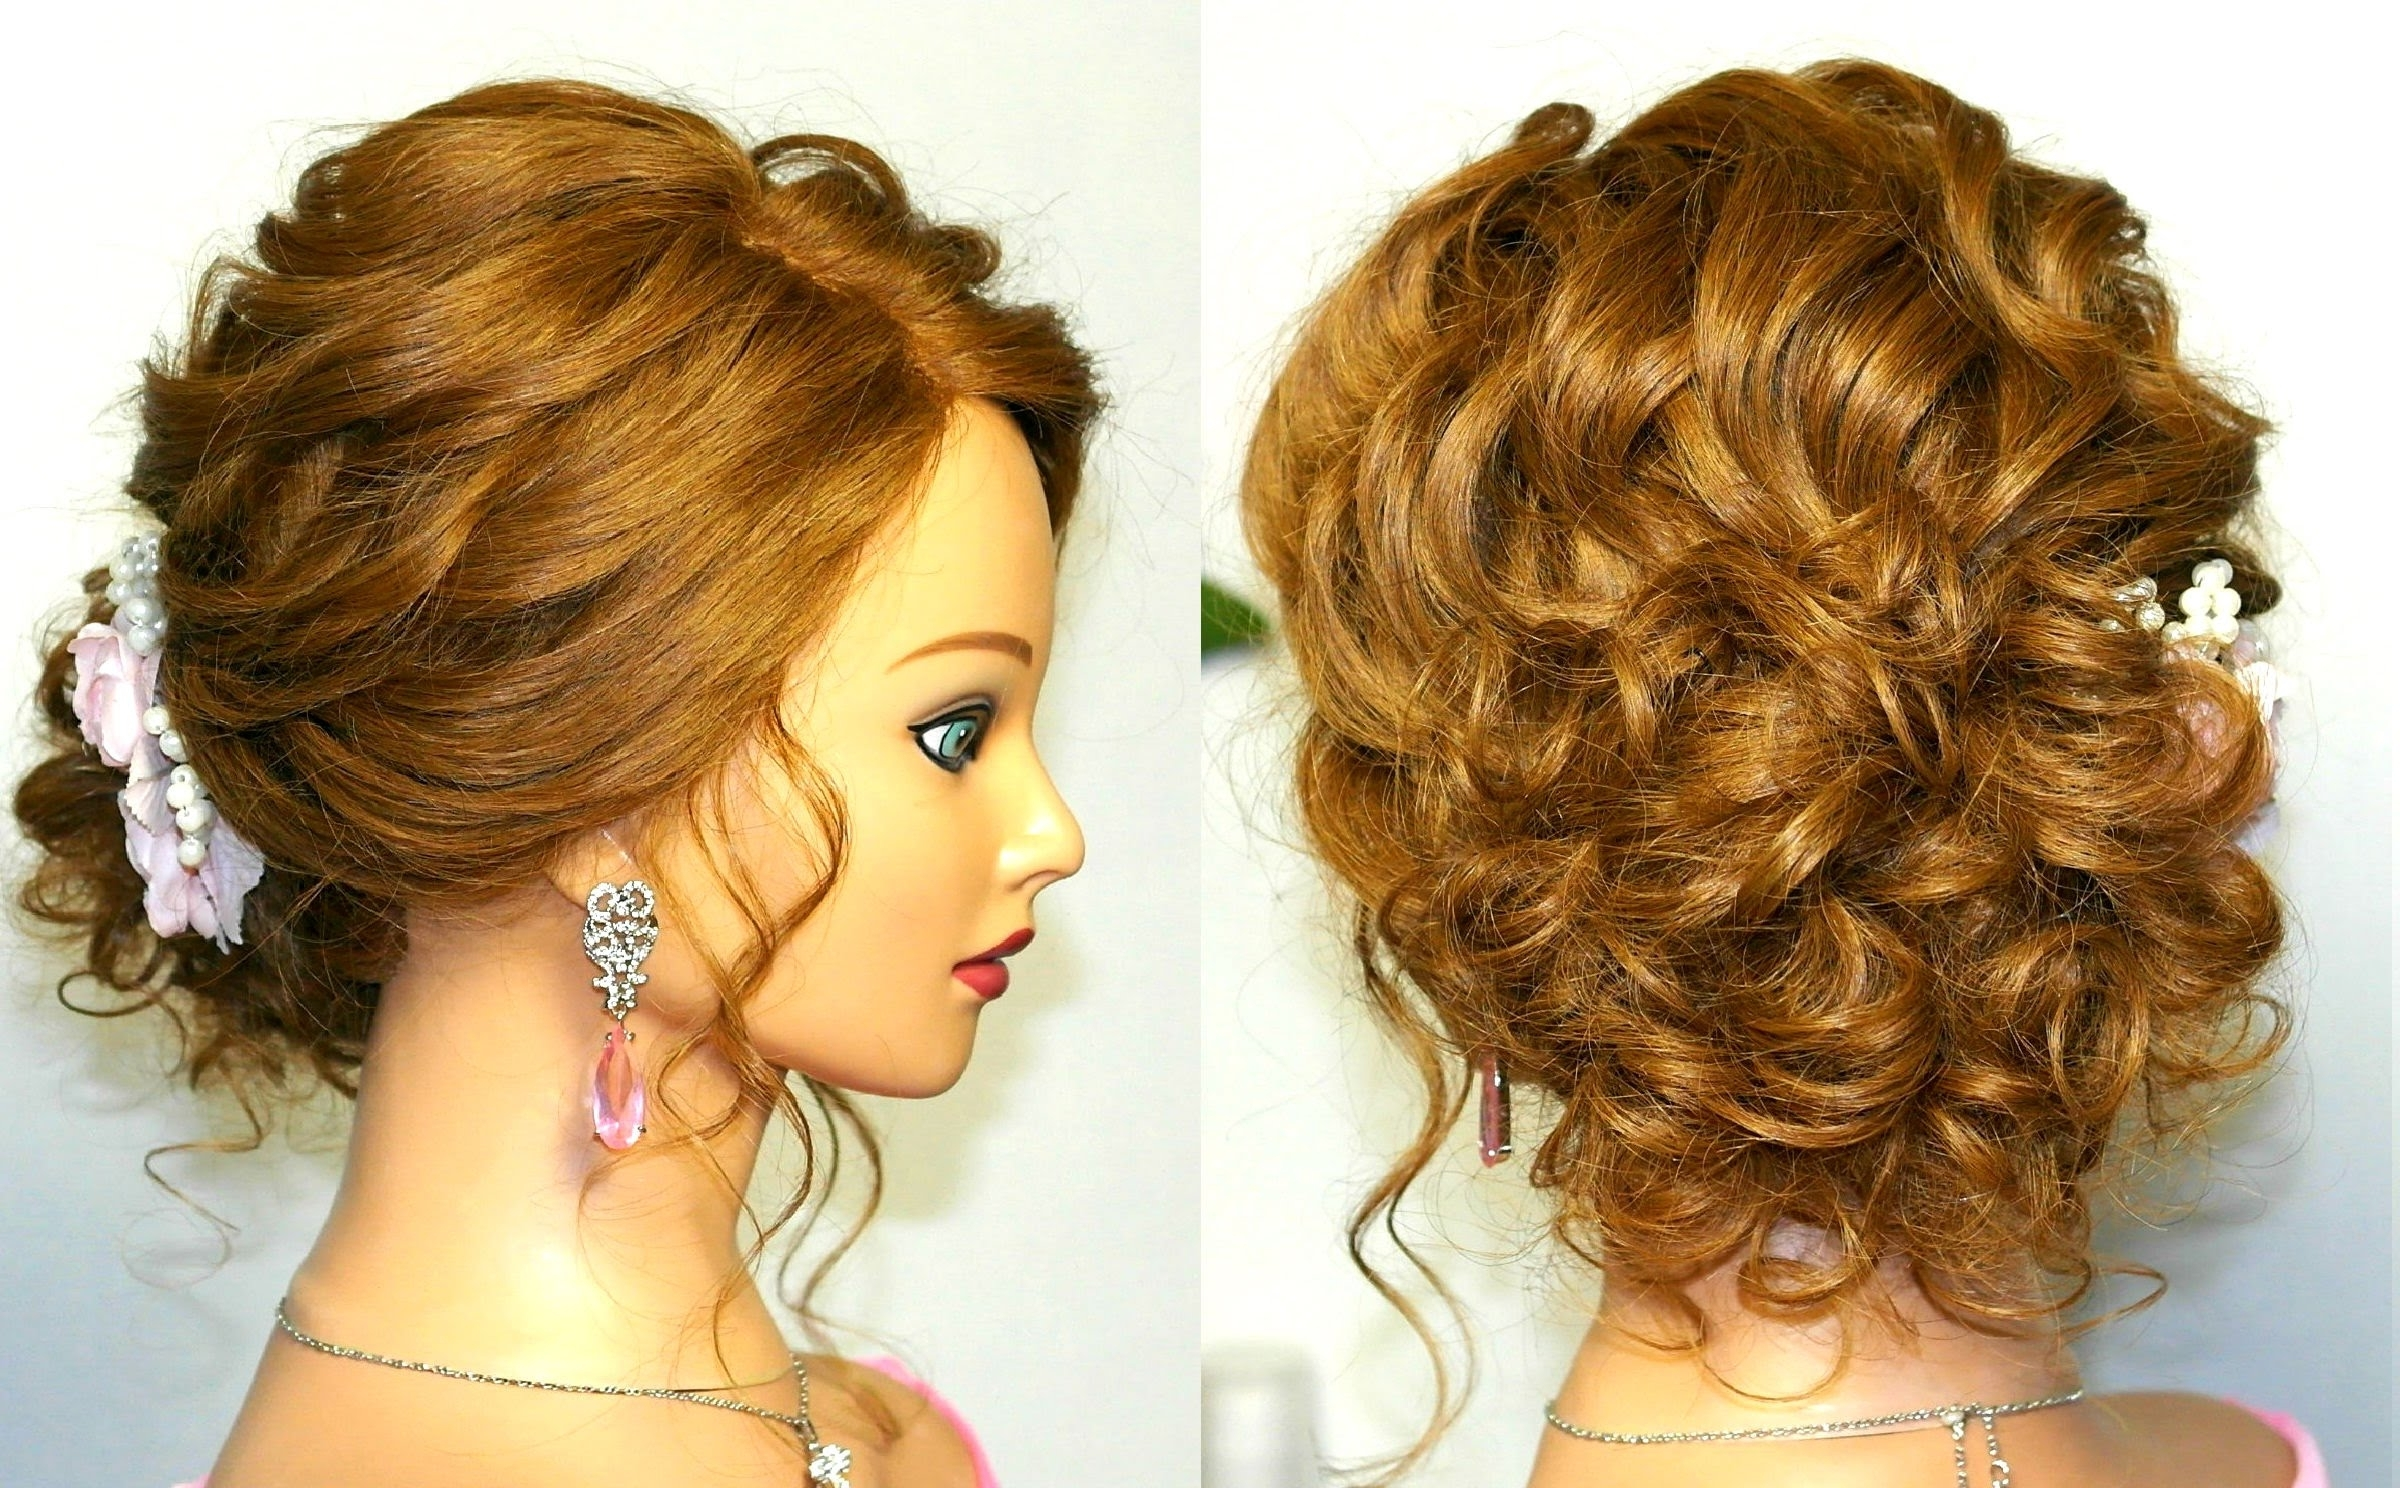 10 Lavish Wedding Hairstyles For Long Hair: 15 Ideas Of Updo Hairstyles For Long Curly Hair